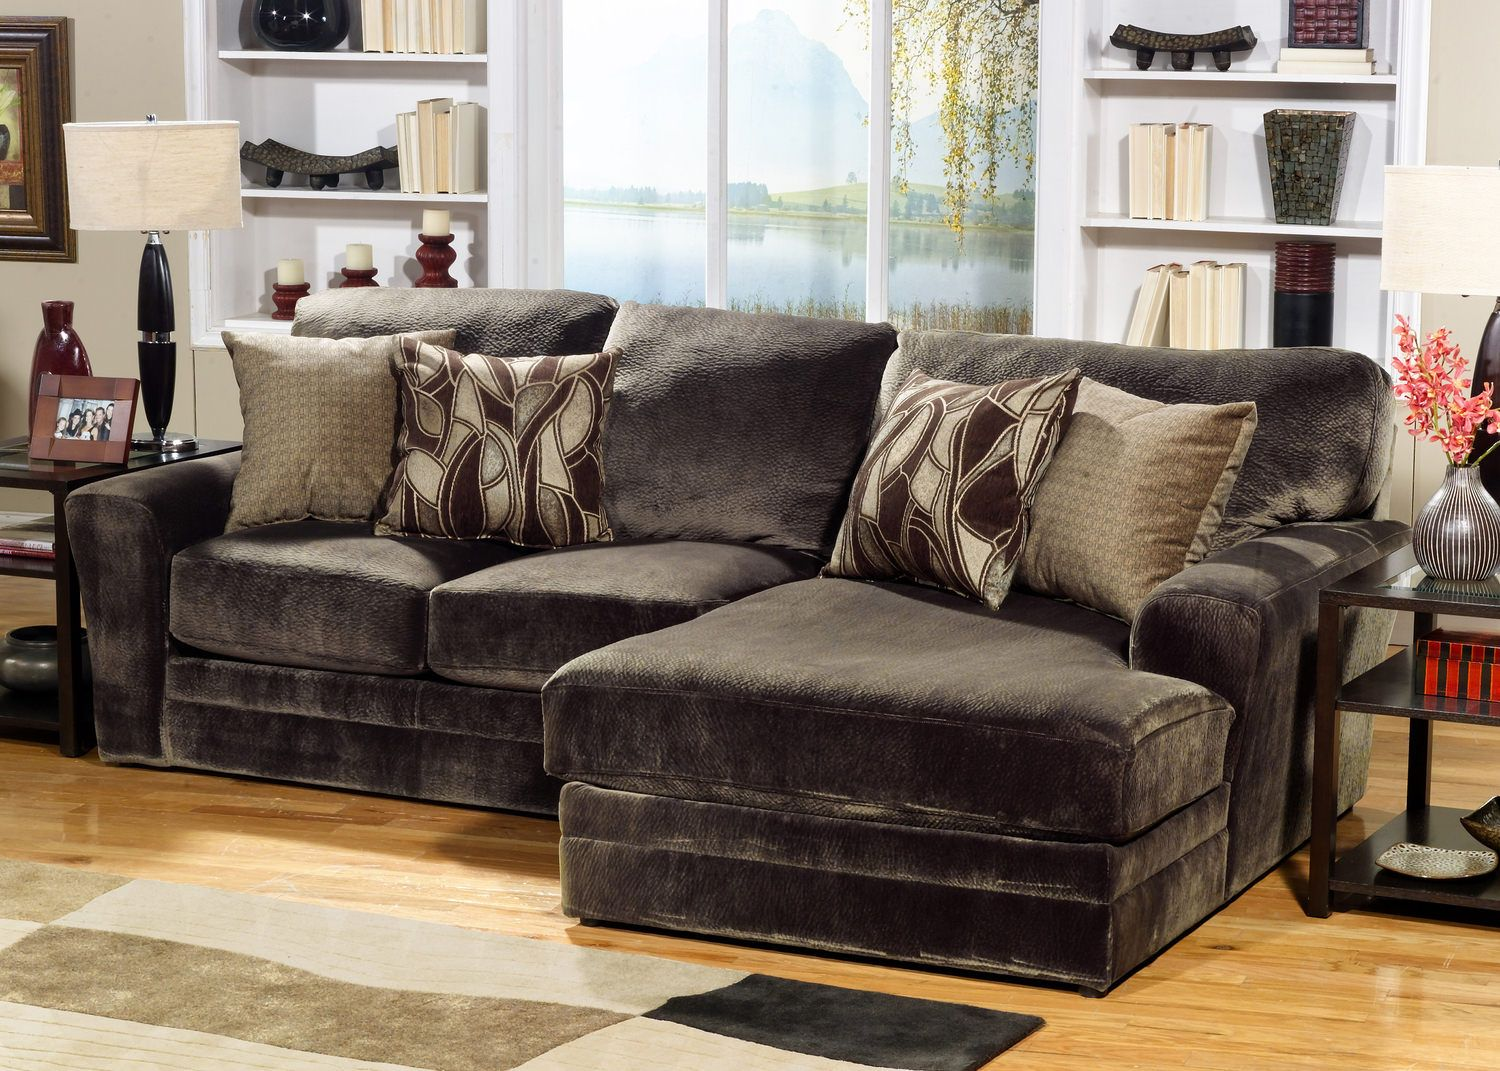 HOM Furniture | Furniture Stores In Minneapolis Minnesota U0026 Midwest |  Sectionals